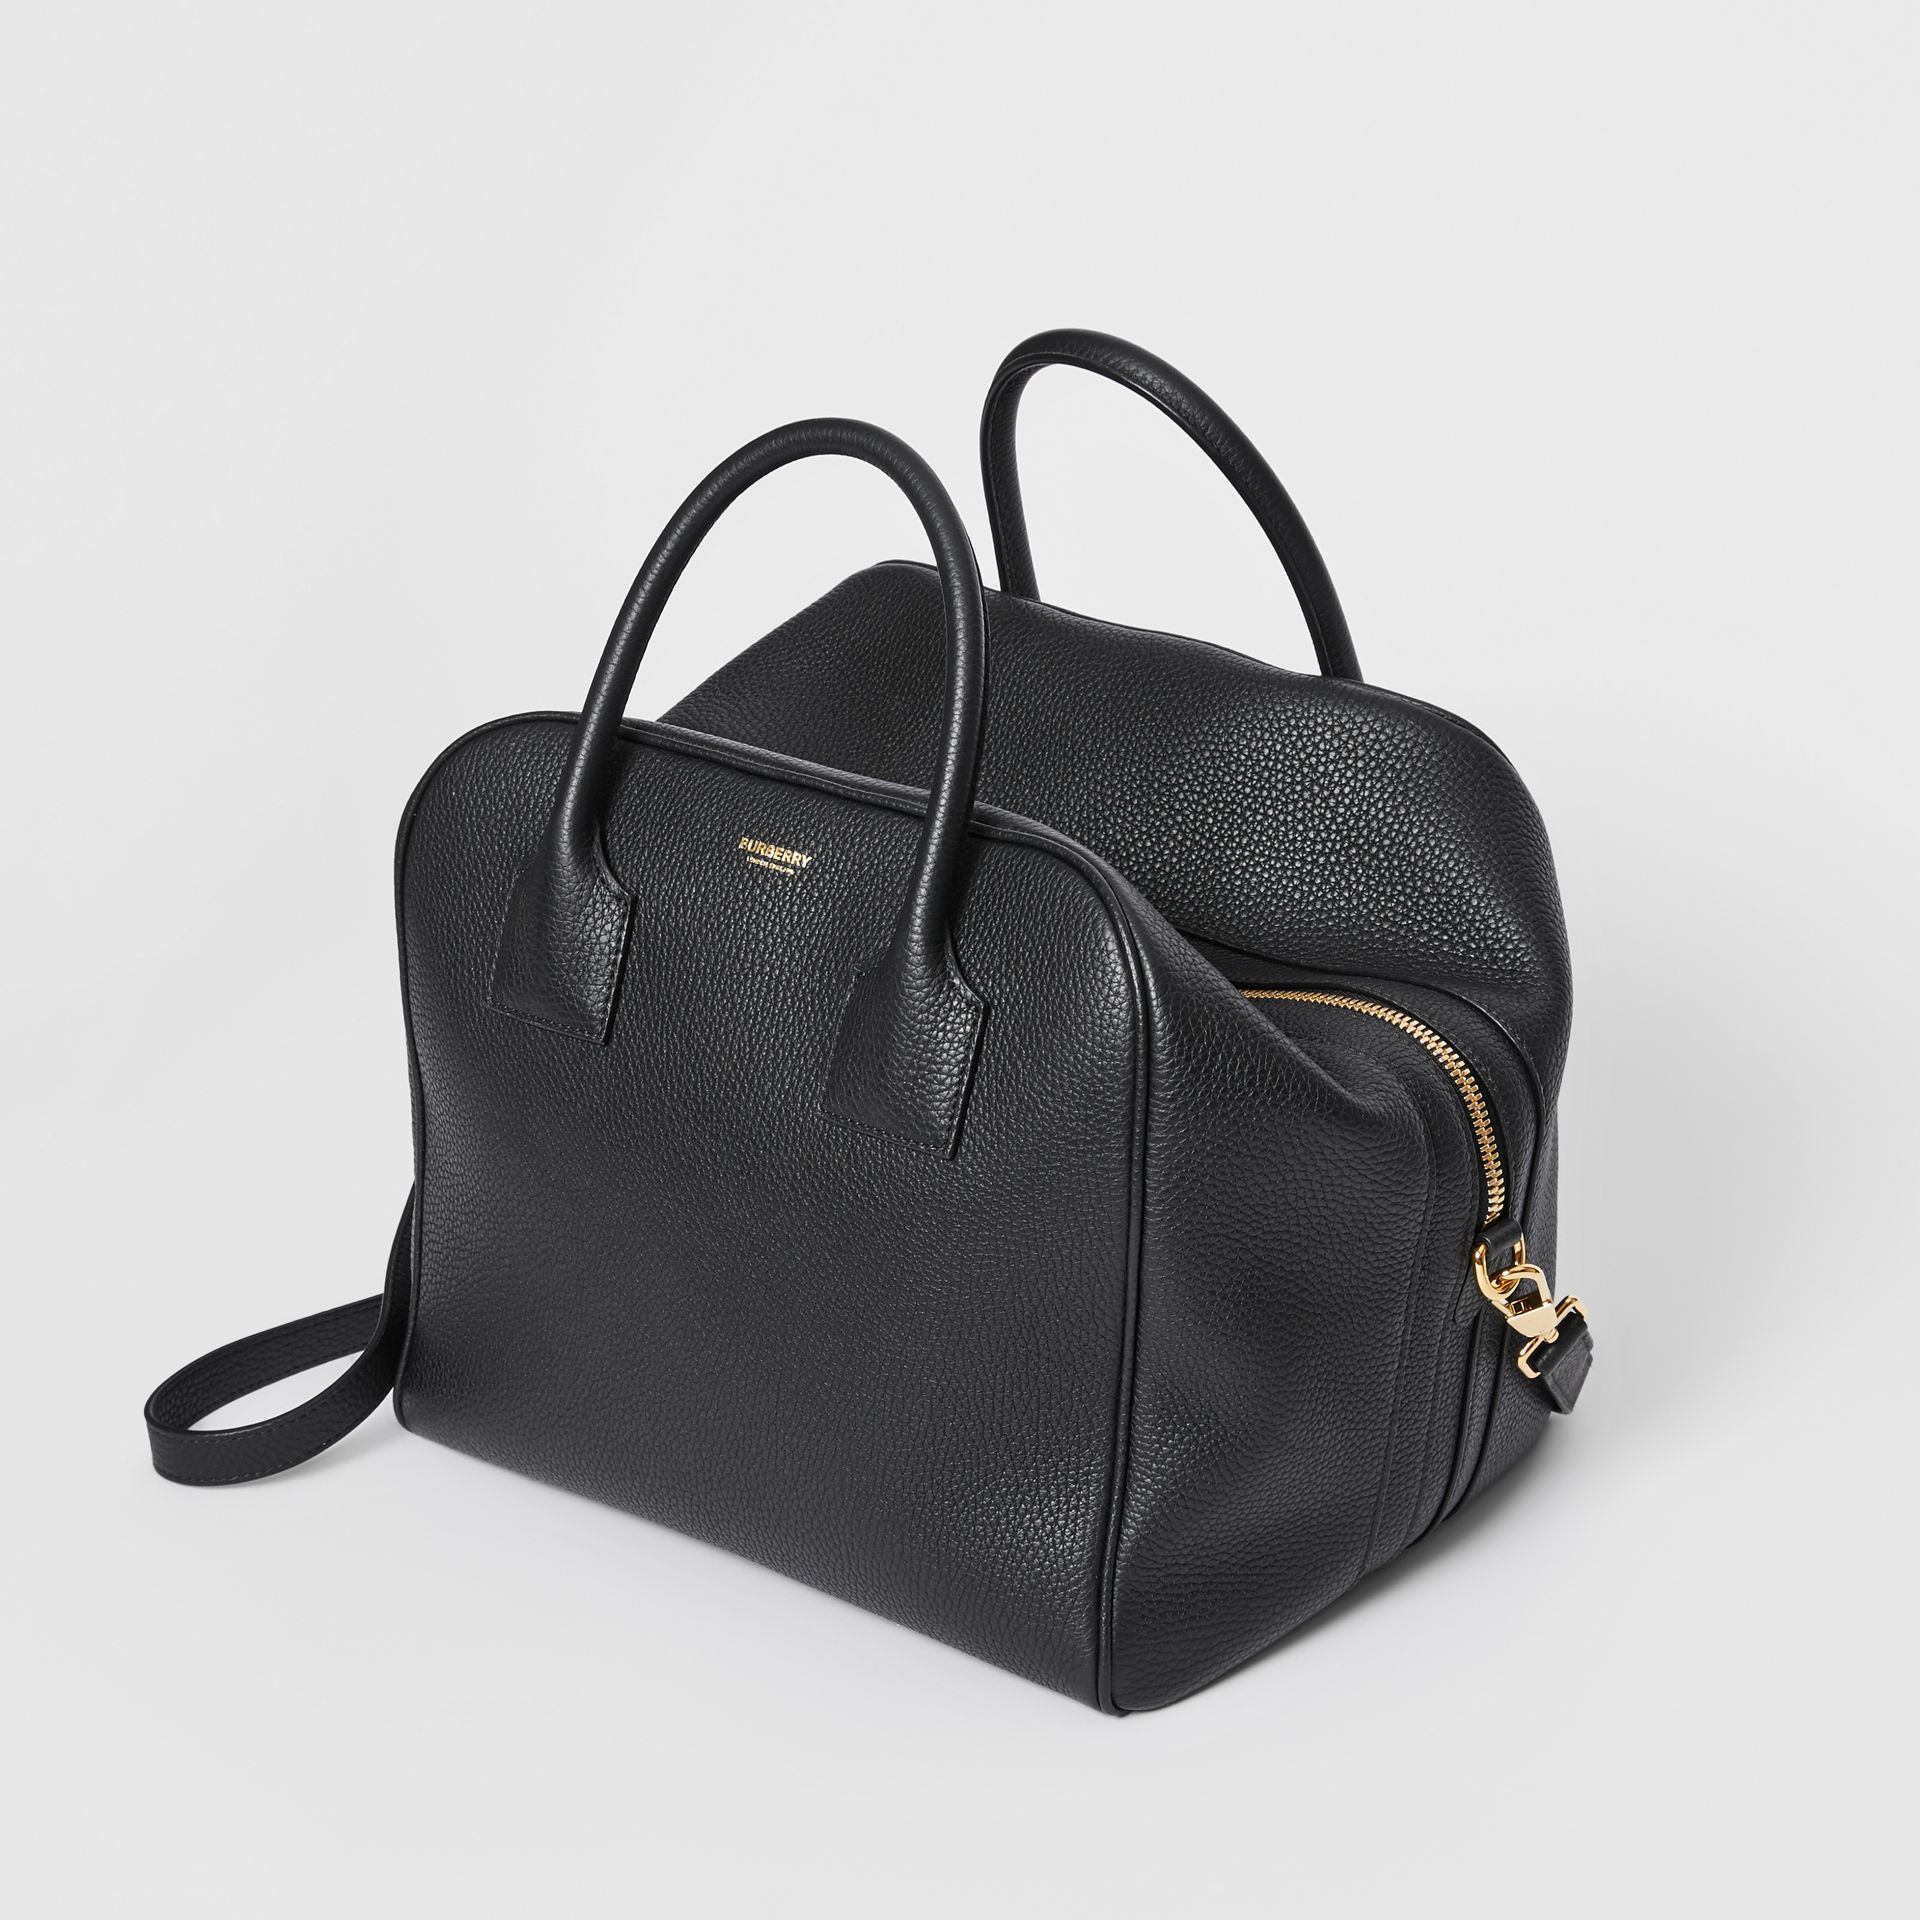 Medium Leather Cube Bag in Black - Women | Burberry Hong Kong S.A.R - gallery image 3